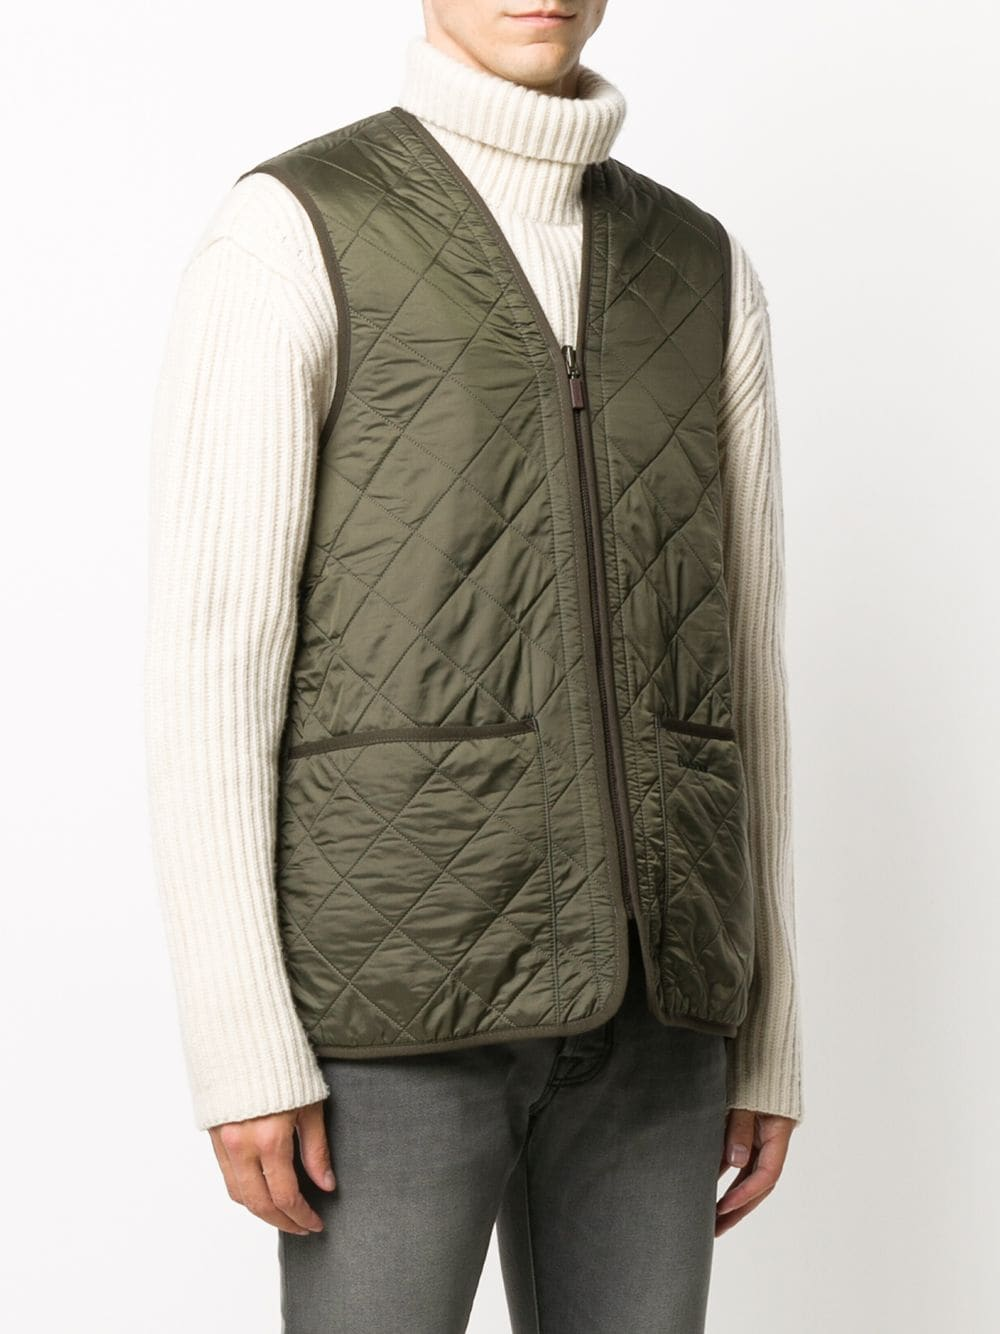 quilted waistcoat man olive green BARBOUR   Jackets   MLI0002OL91